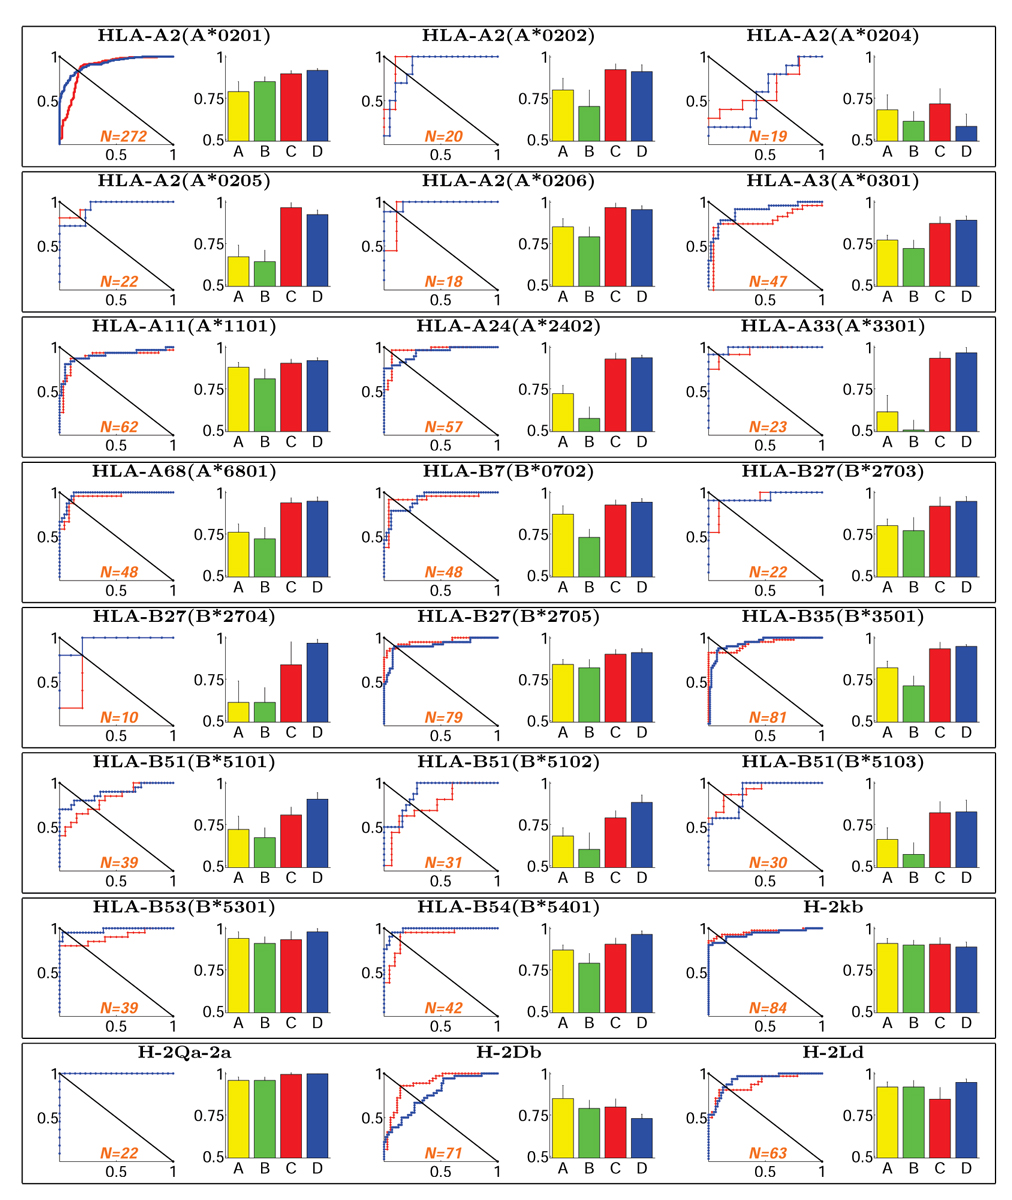 http://static-content.springer.com/image/art%3A10.1186%2F1471-2105-7-S1-S3/MediaObjects/12859_2006_Article_1286_Fig5_HTML.jpg